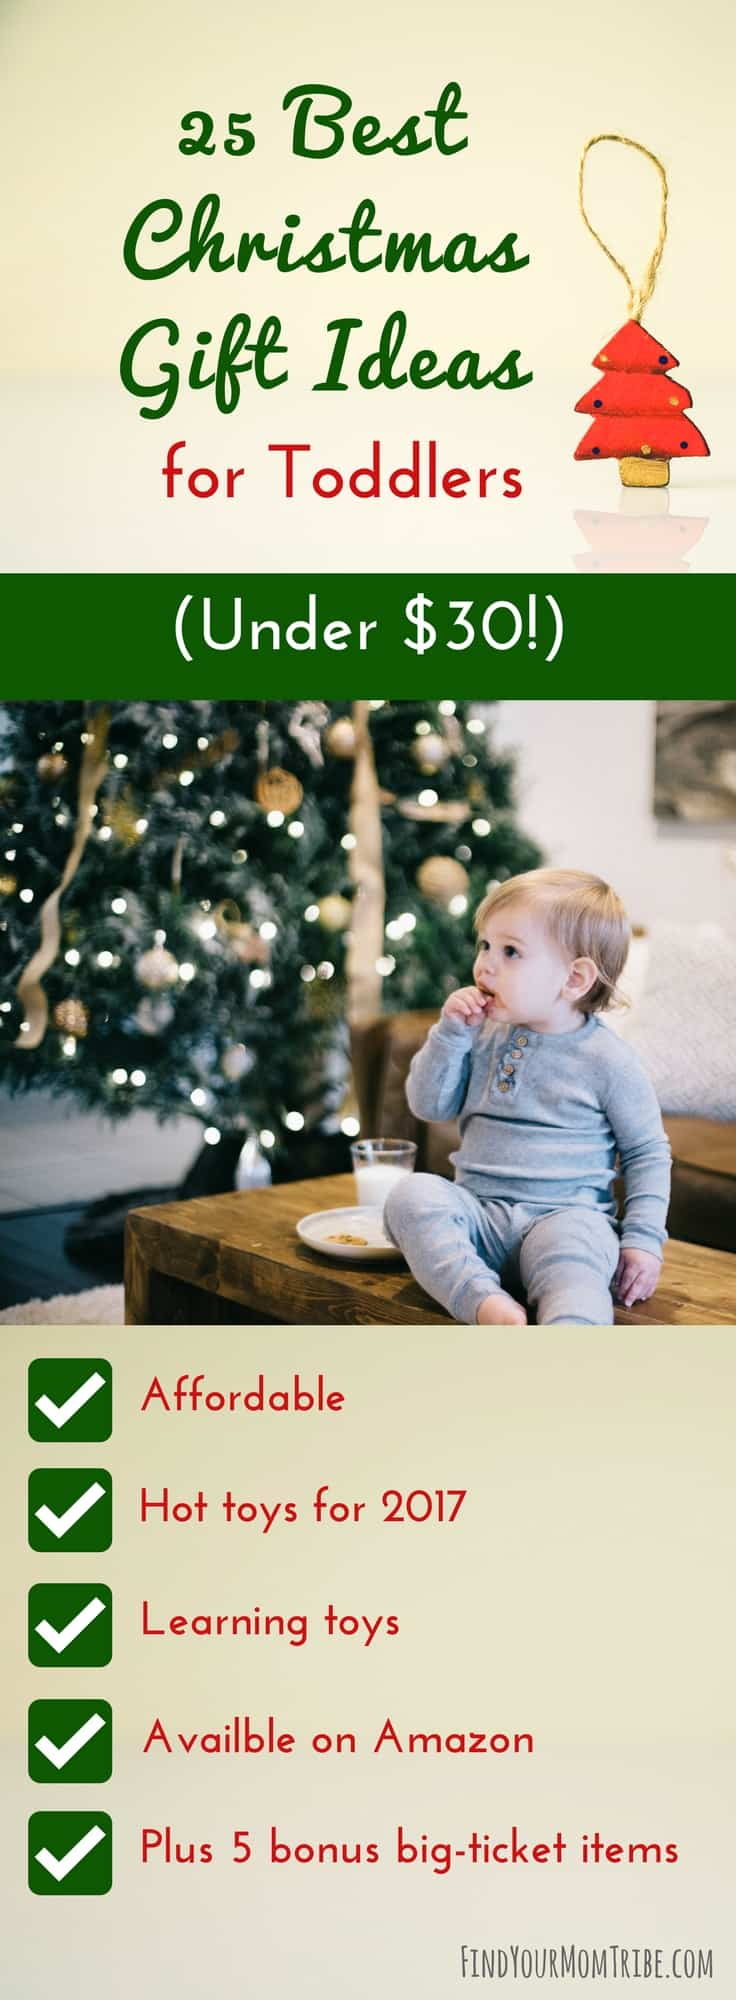 Best 25 30 Inch Vanity Ideas On Pinterest: 25 Best Christmas Gift Ideas For Toddlers (Under $30